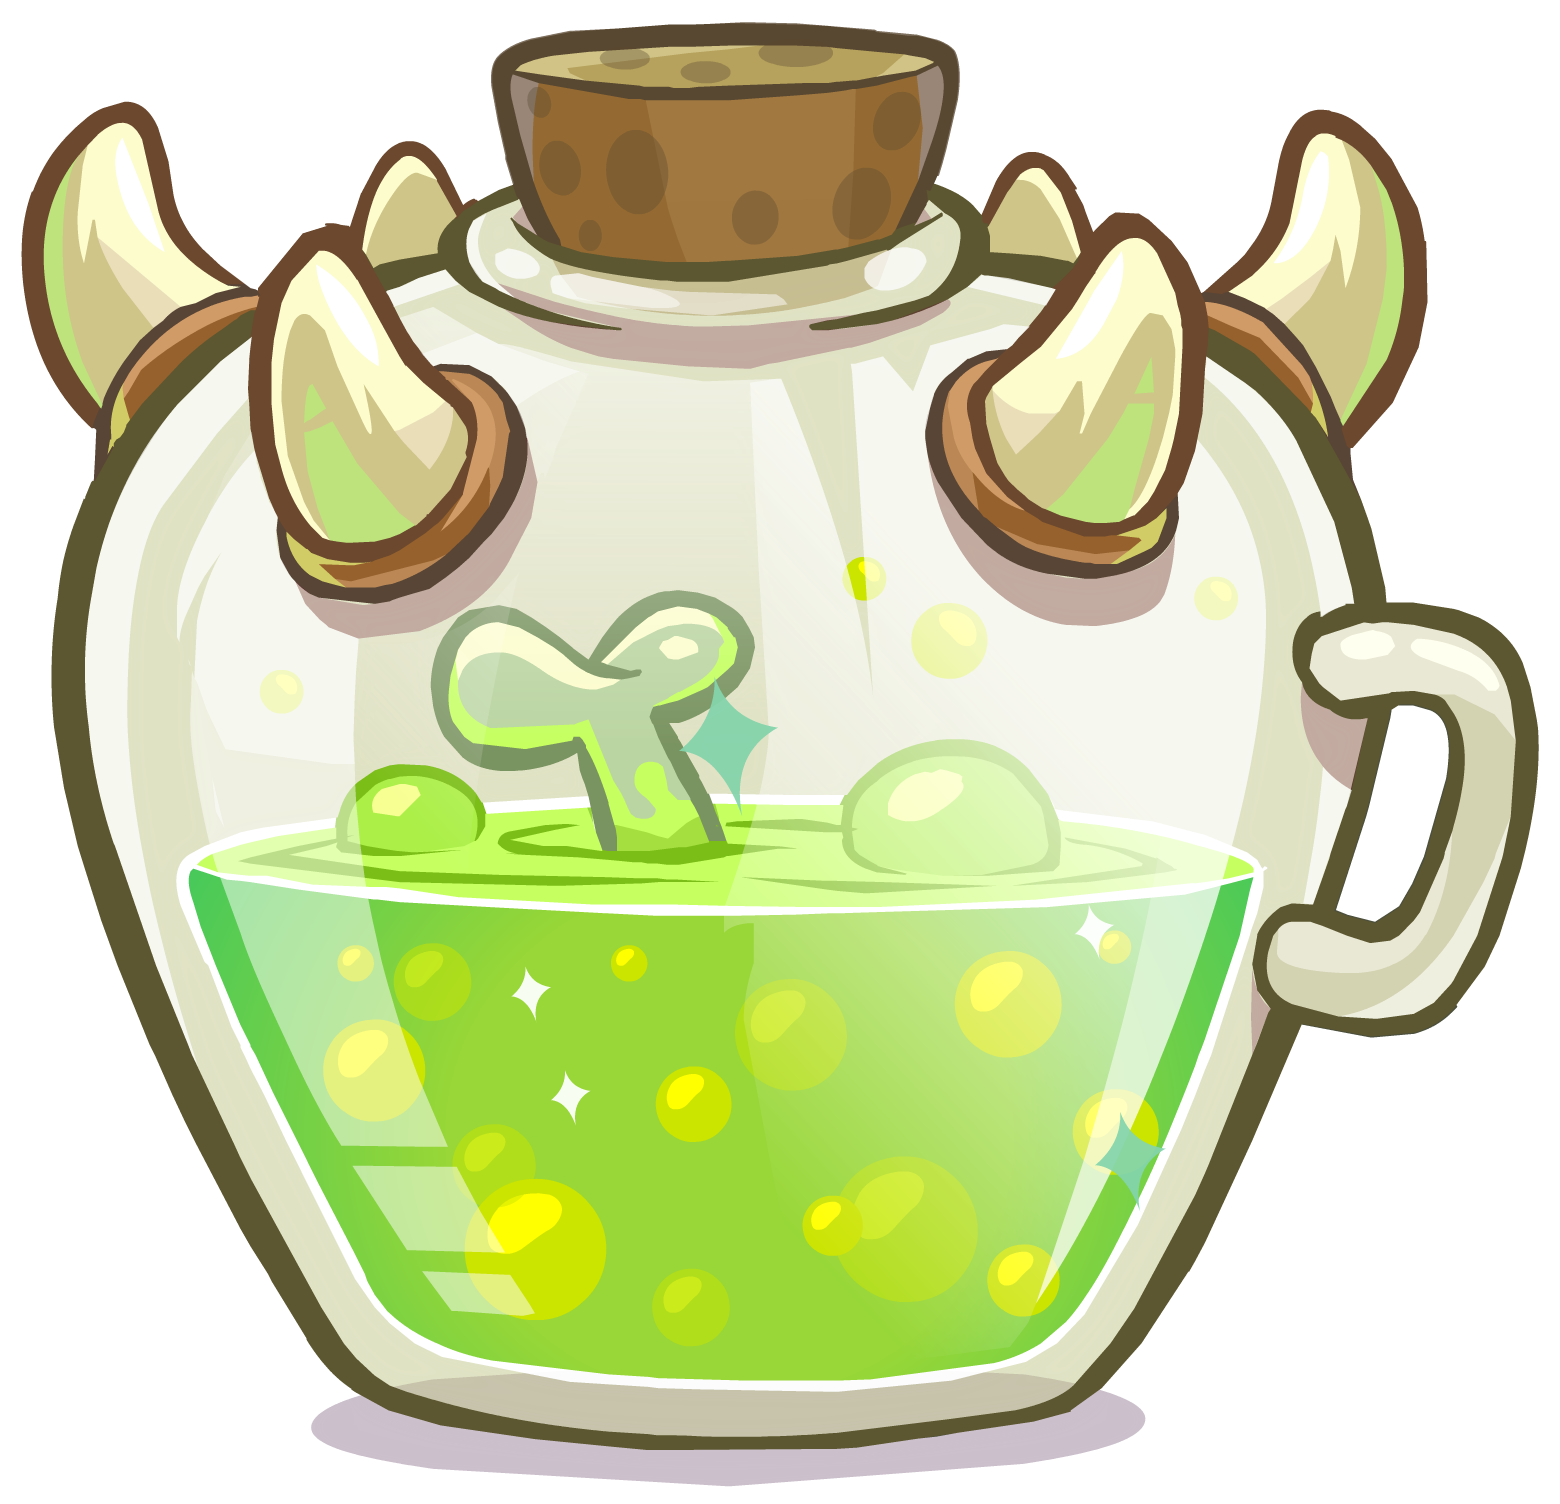 Image potions orge size. Win clipart medieval window